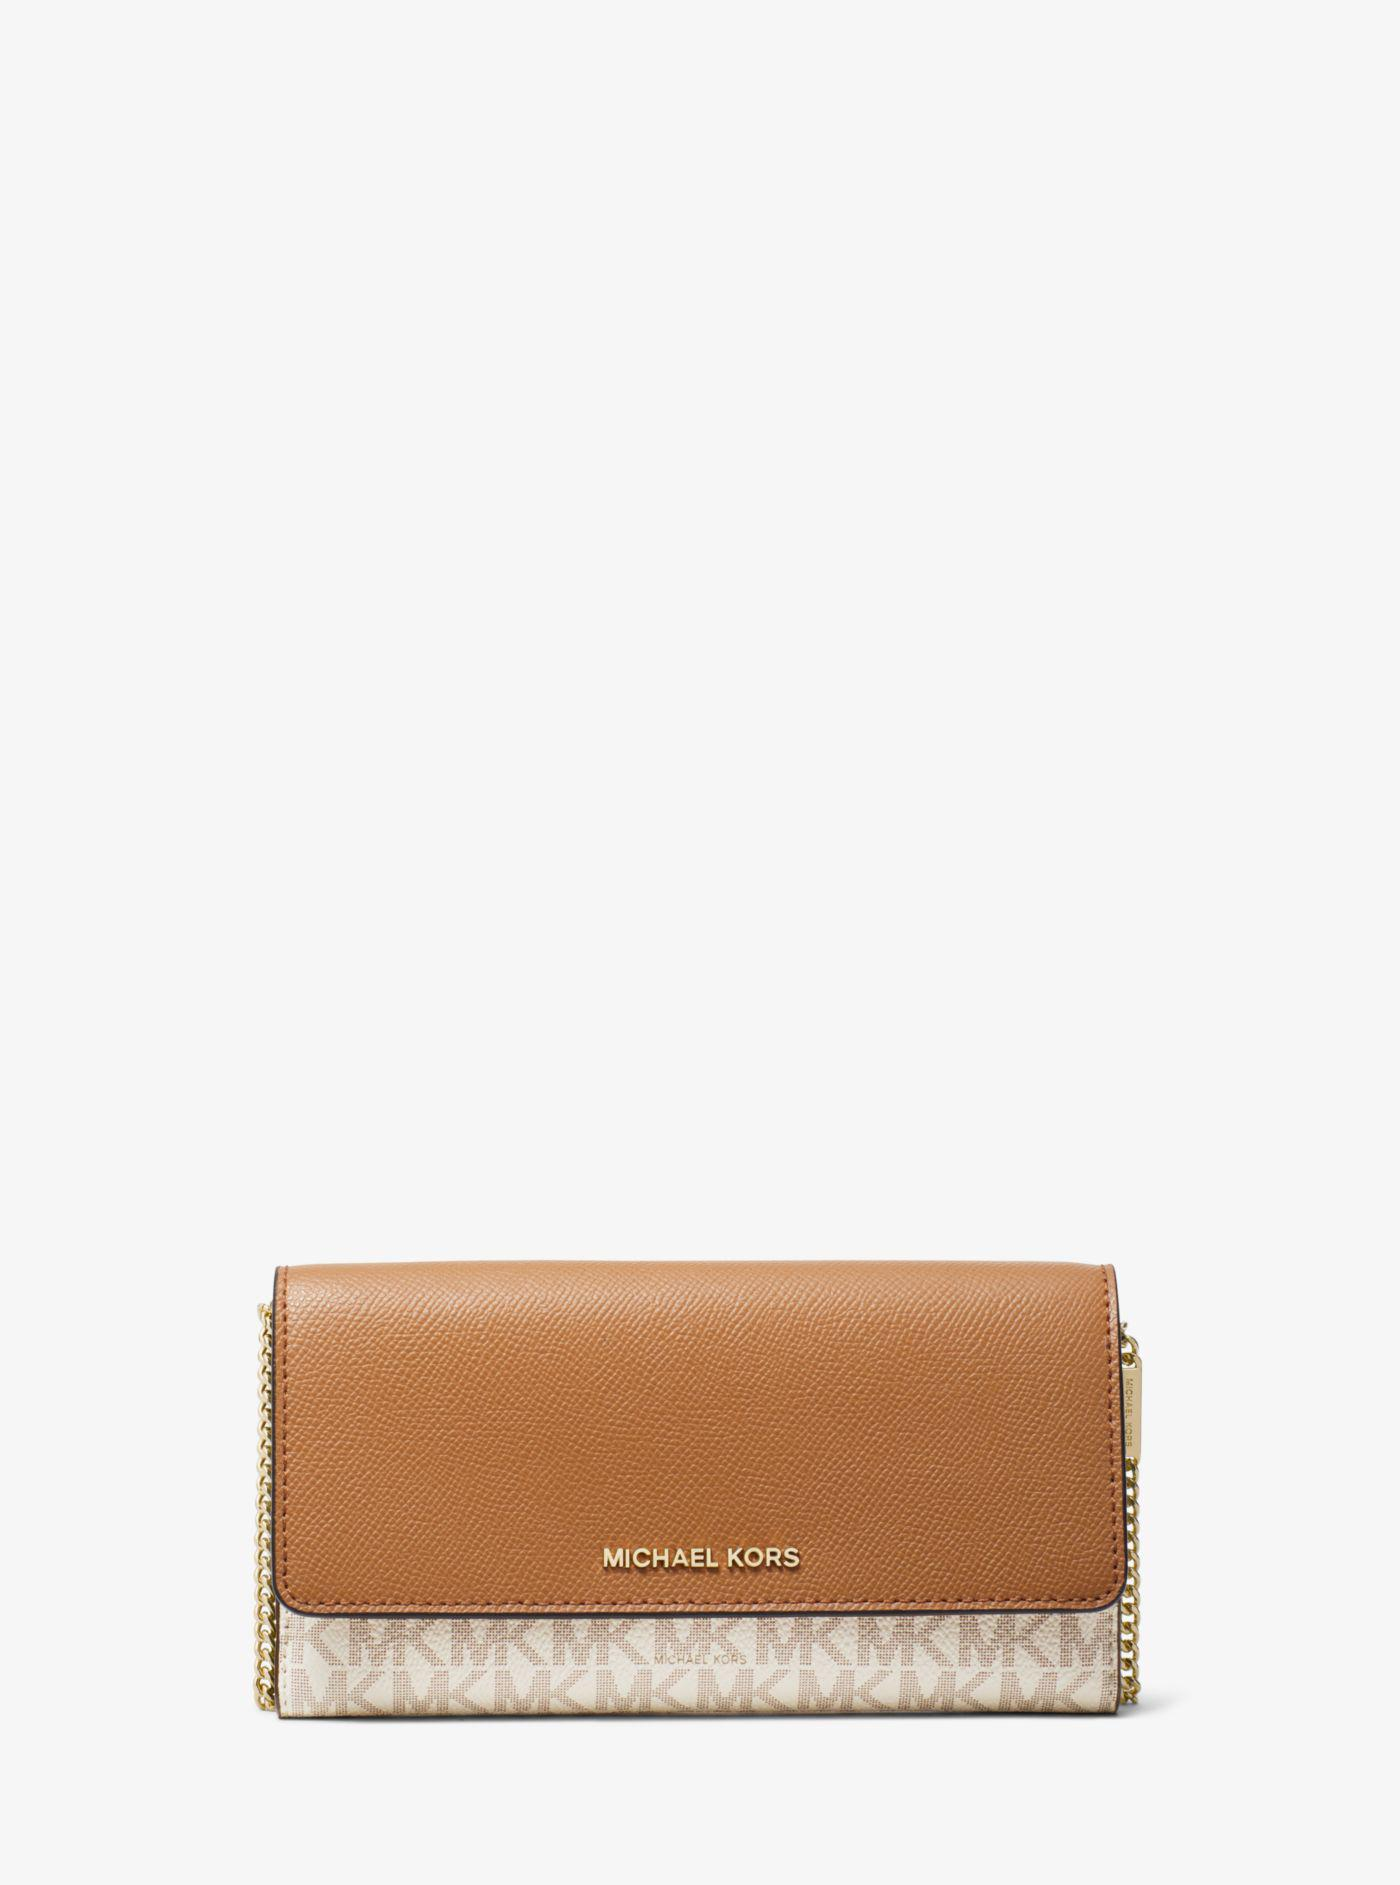 c17f13e5b39f Michael Kors - Multicolor Large Logo And Leather Convertible Chain Wallet -  Lyst. View fullscreen